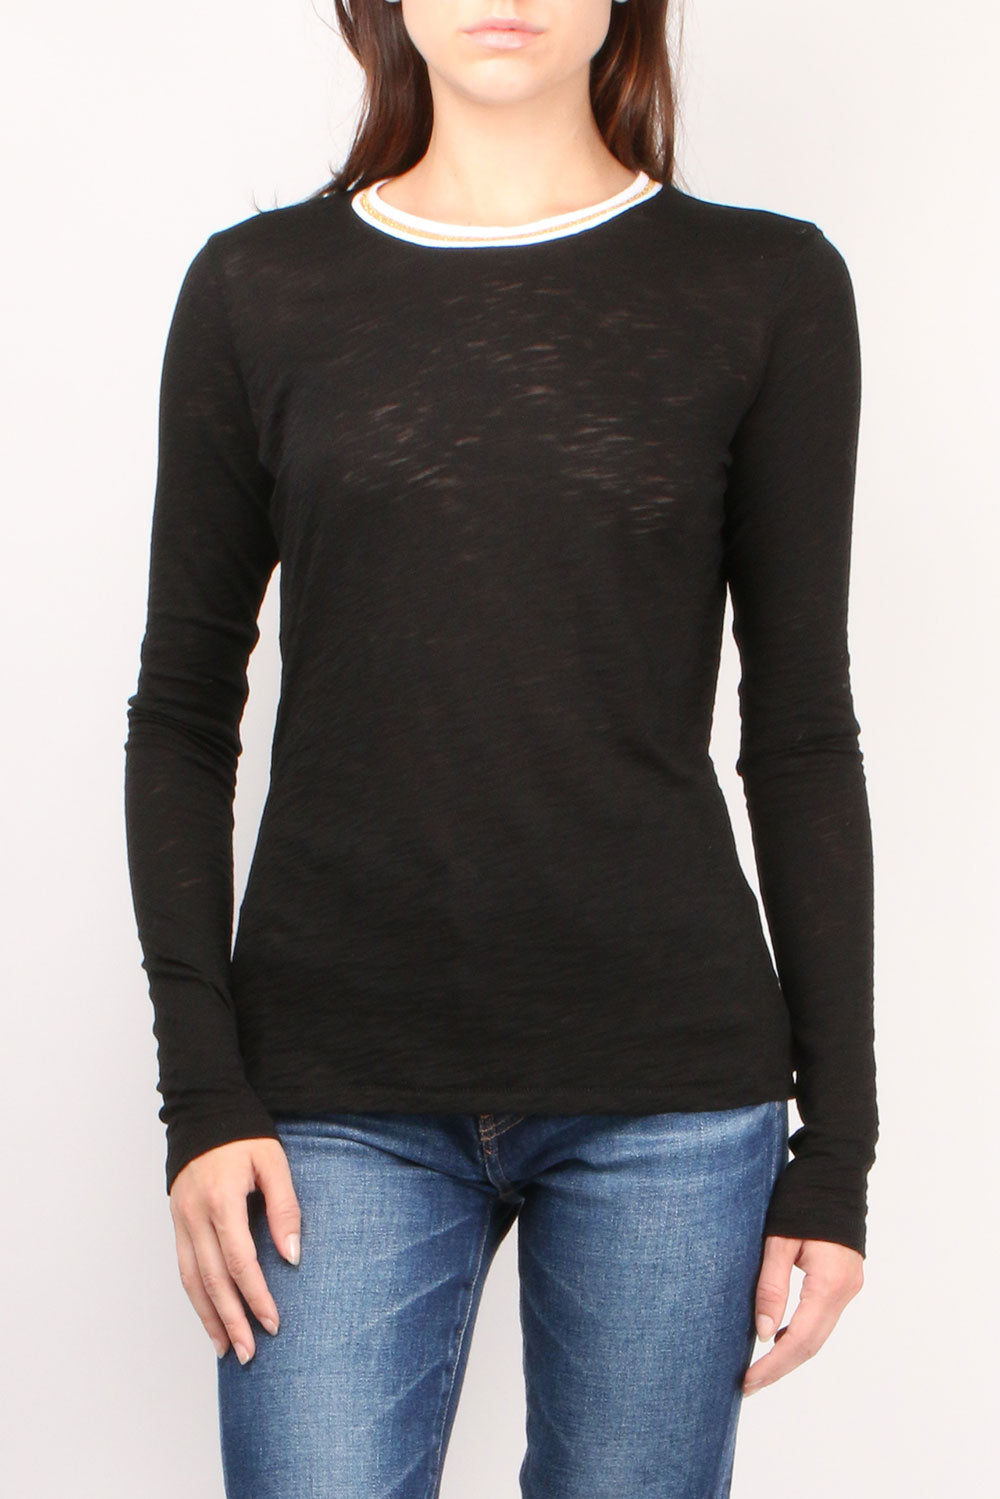 L/S Black Tipped Tee